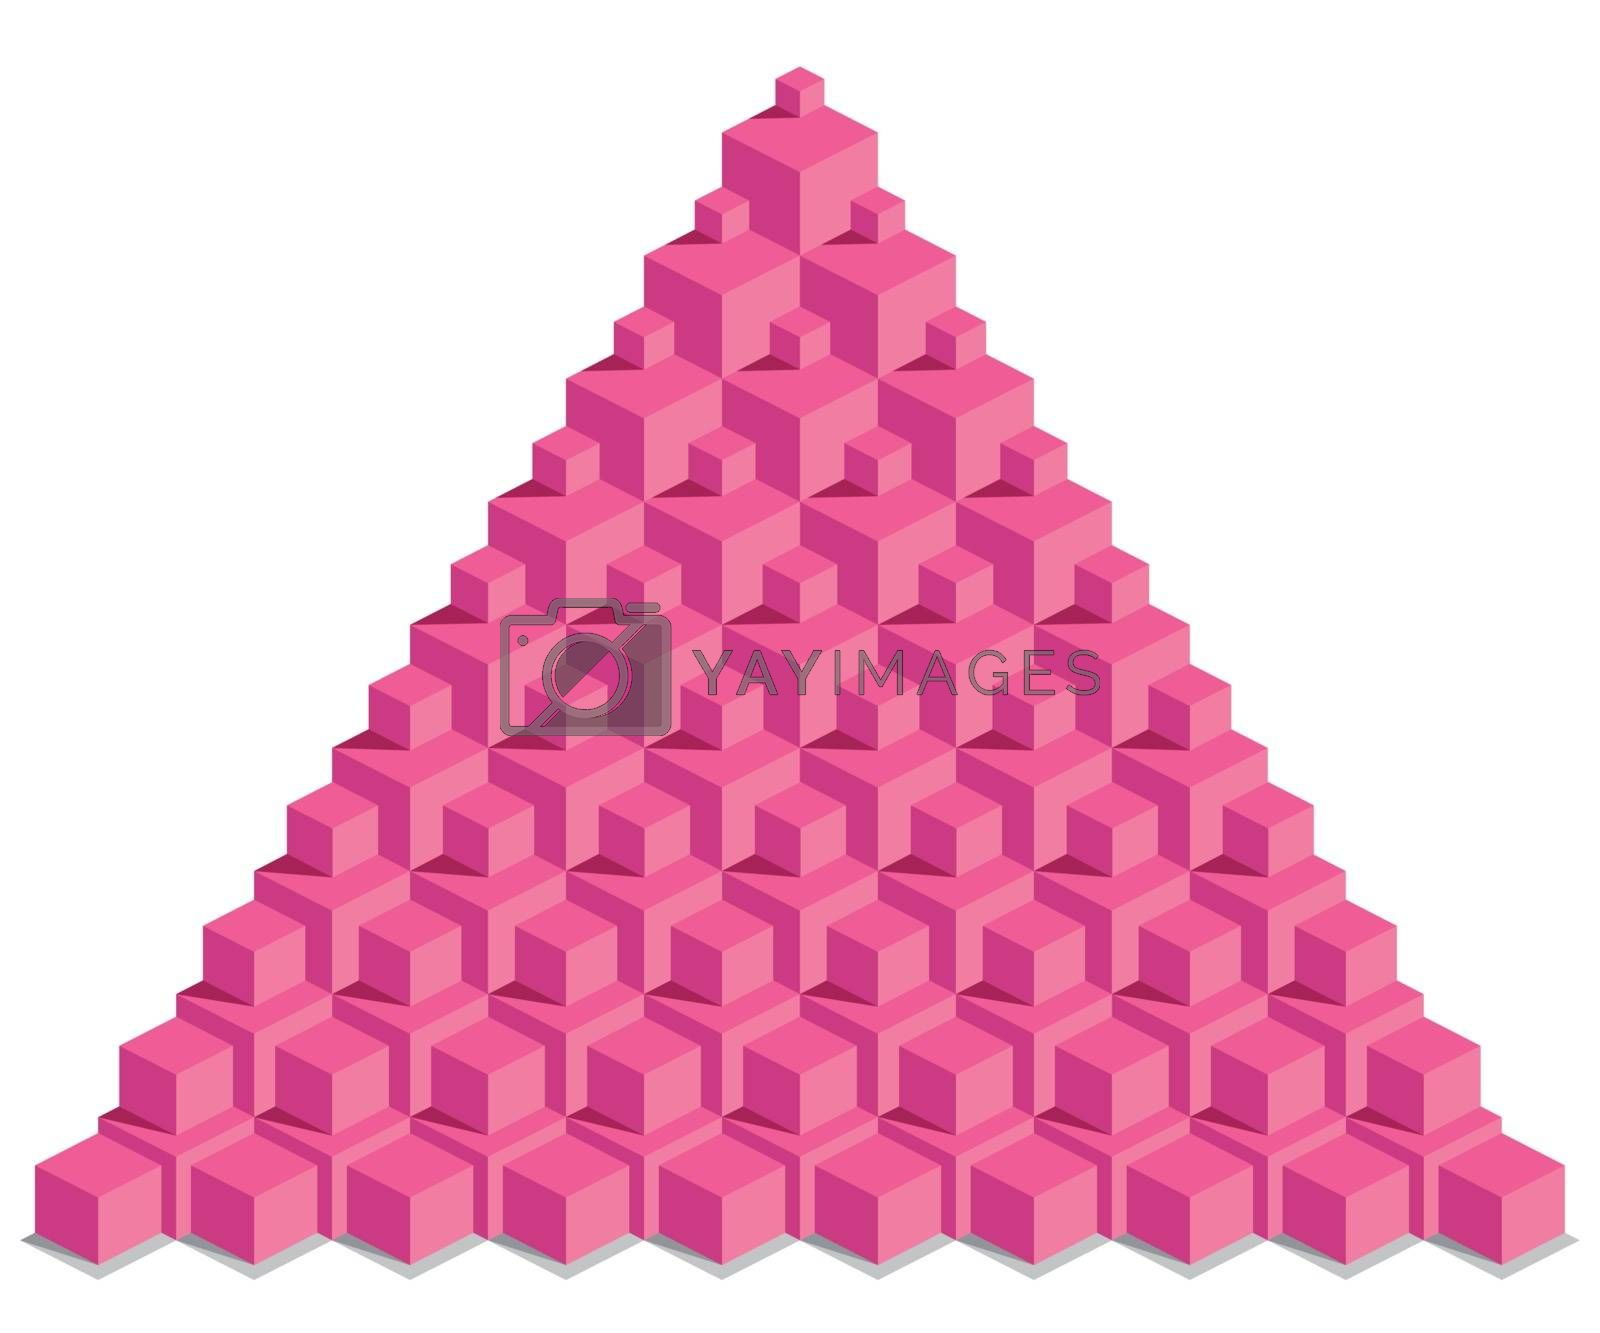 Royalty free image of Pyramid of red cubes, illustration by scusi